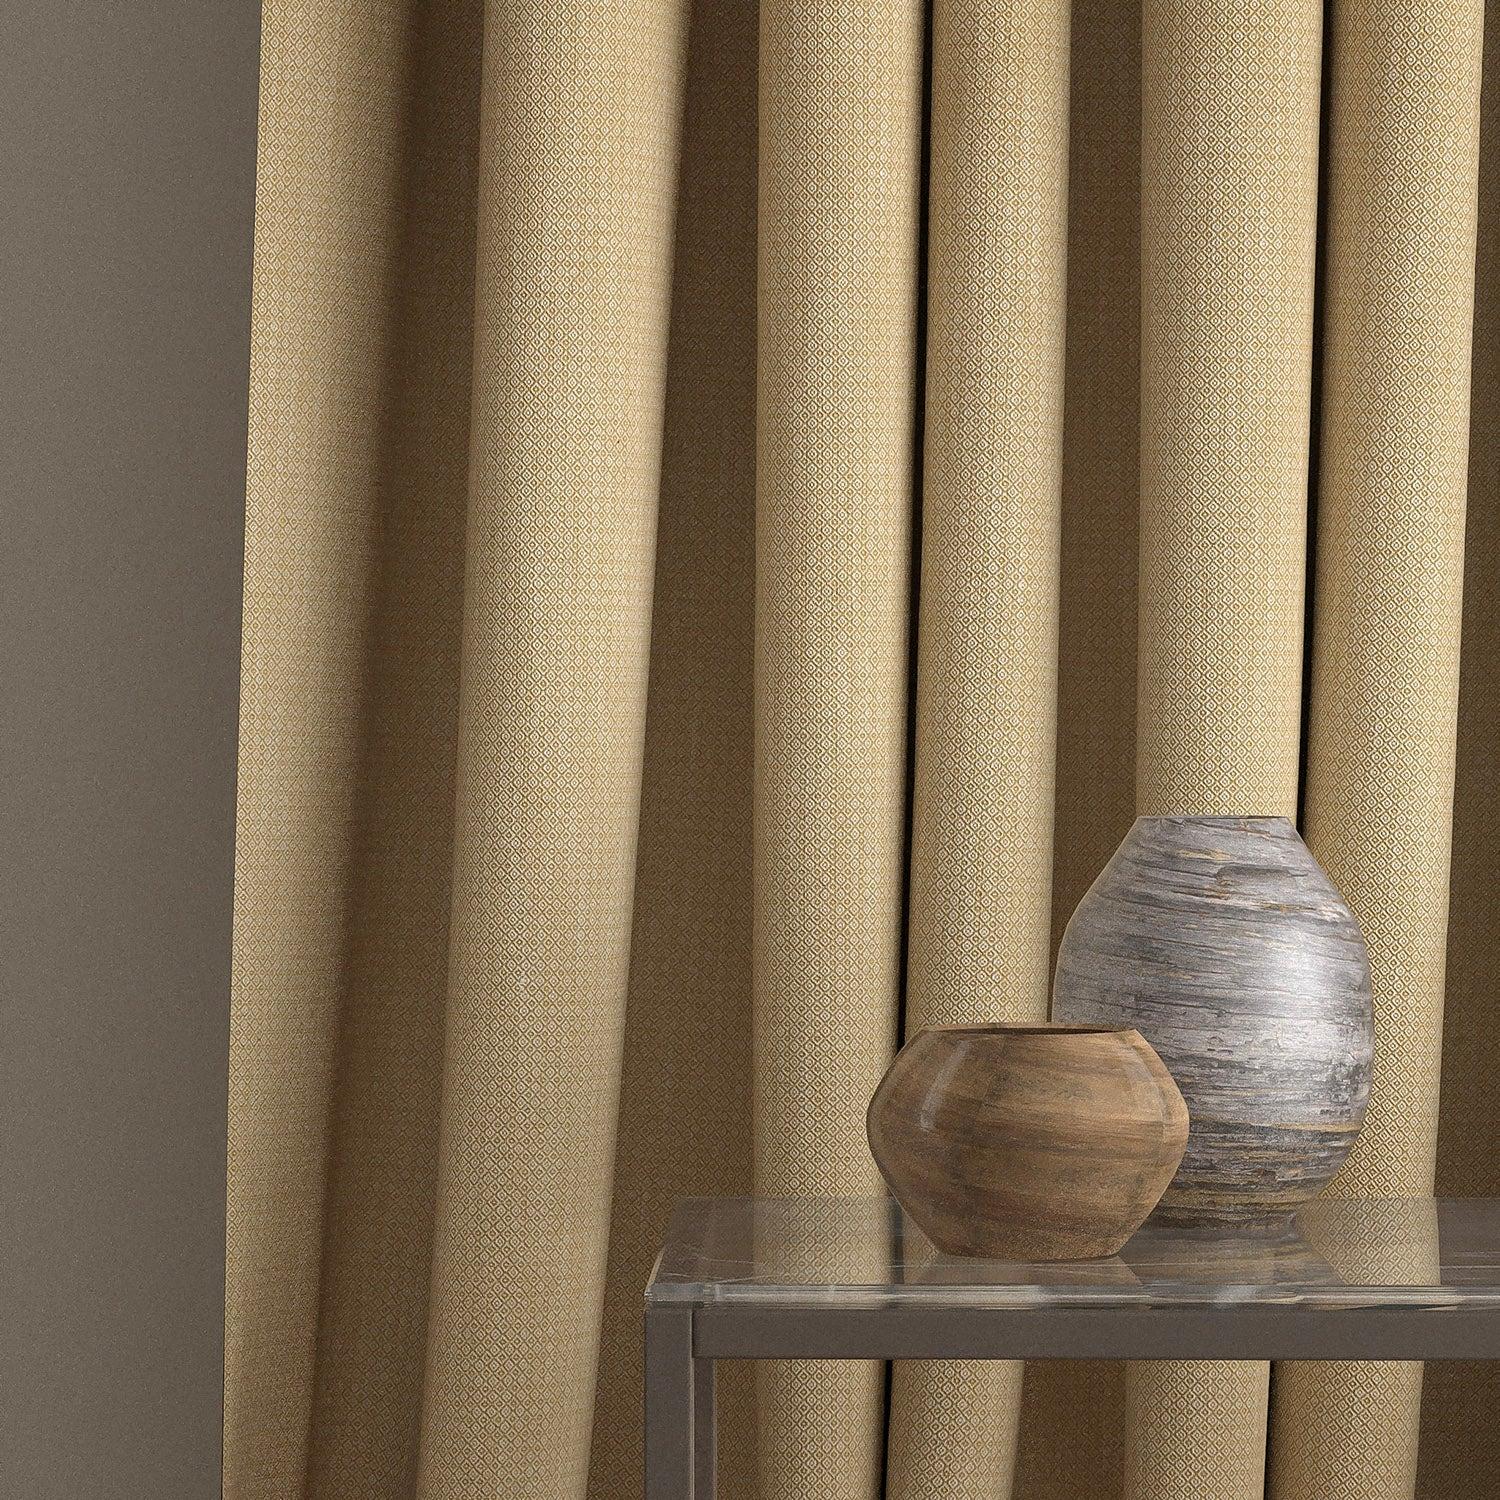 Curtain in a yellow and neutral weave fabric with a small diamond design and a stain resistant finish